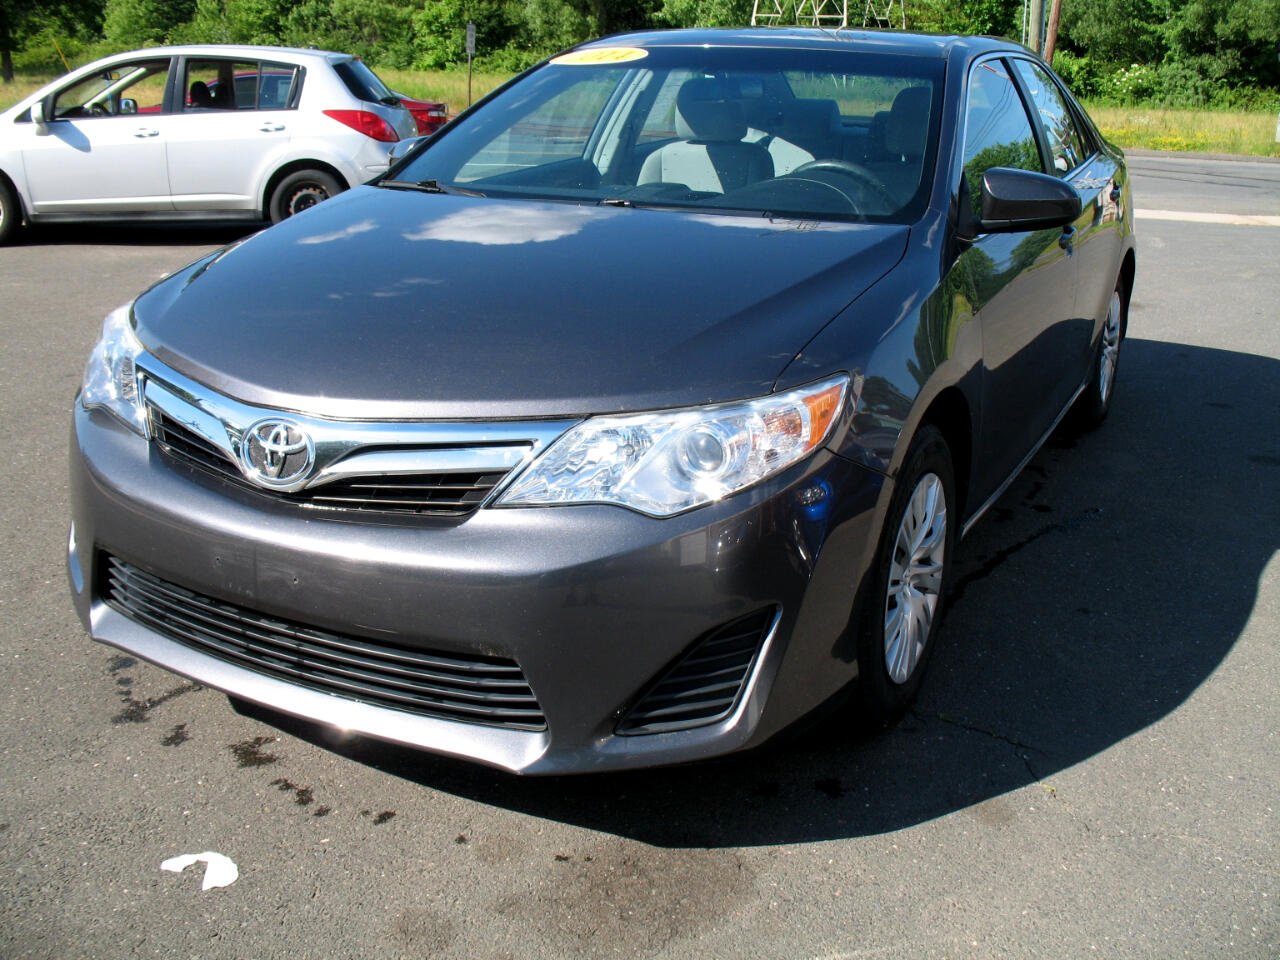 2014 Toyota Camry 4dr Sdn I4 Auto LE (Natl)